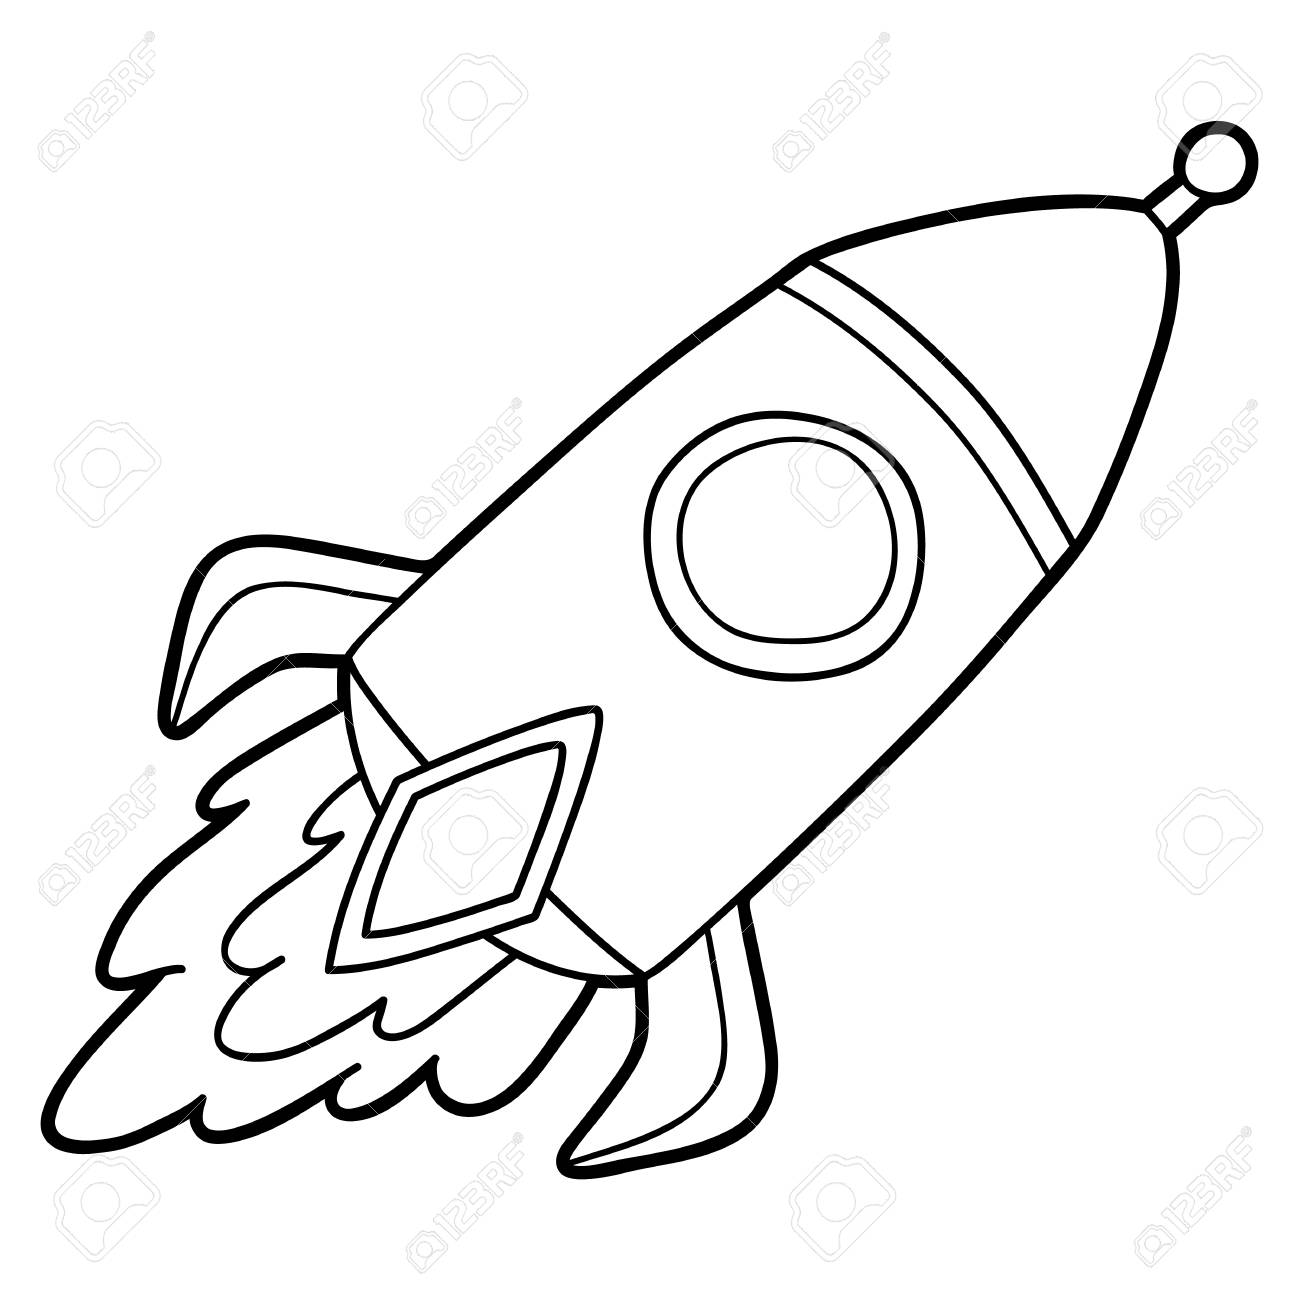 1300x1300 Cute Cartoon Rocket For Children, Coloring Page. Royalty Free